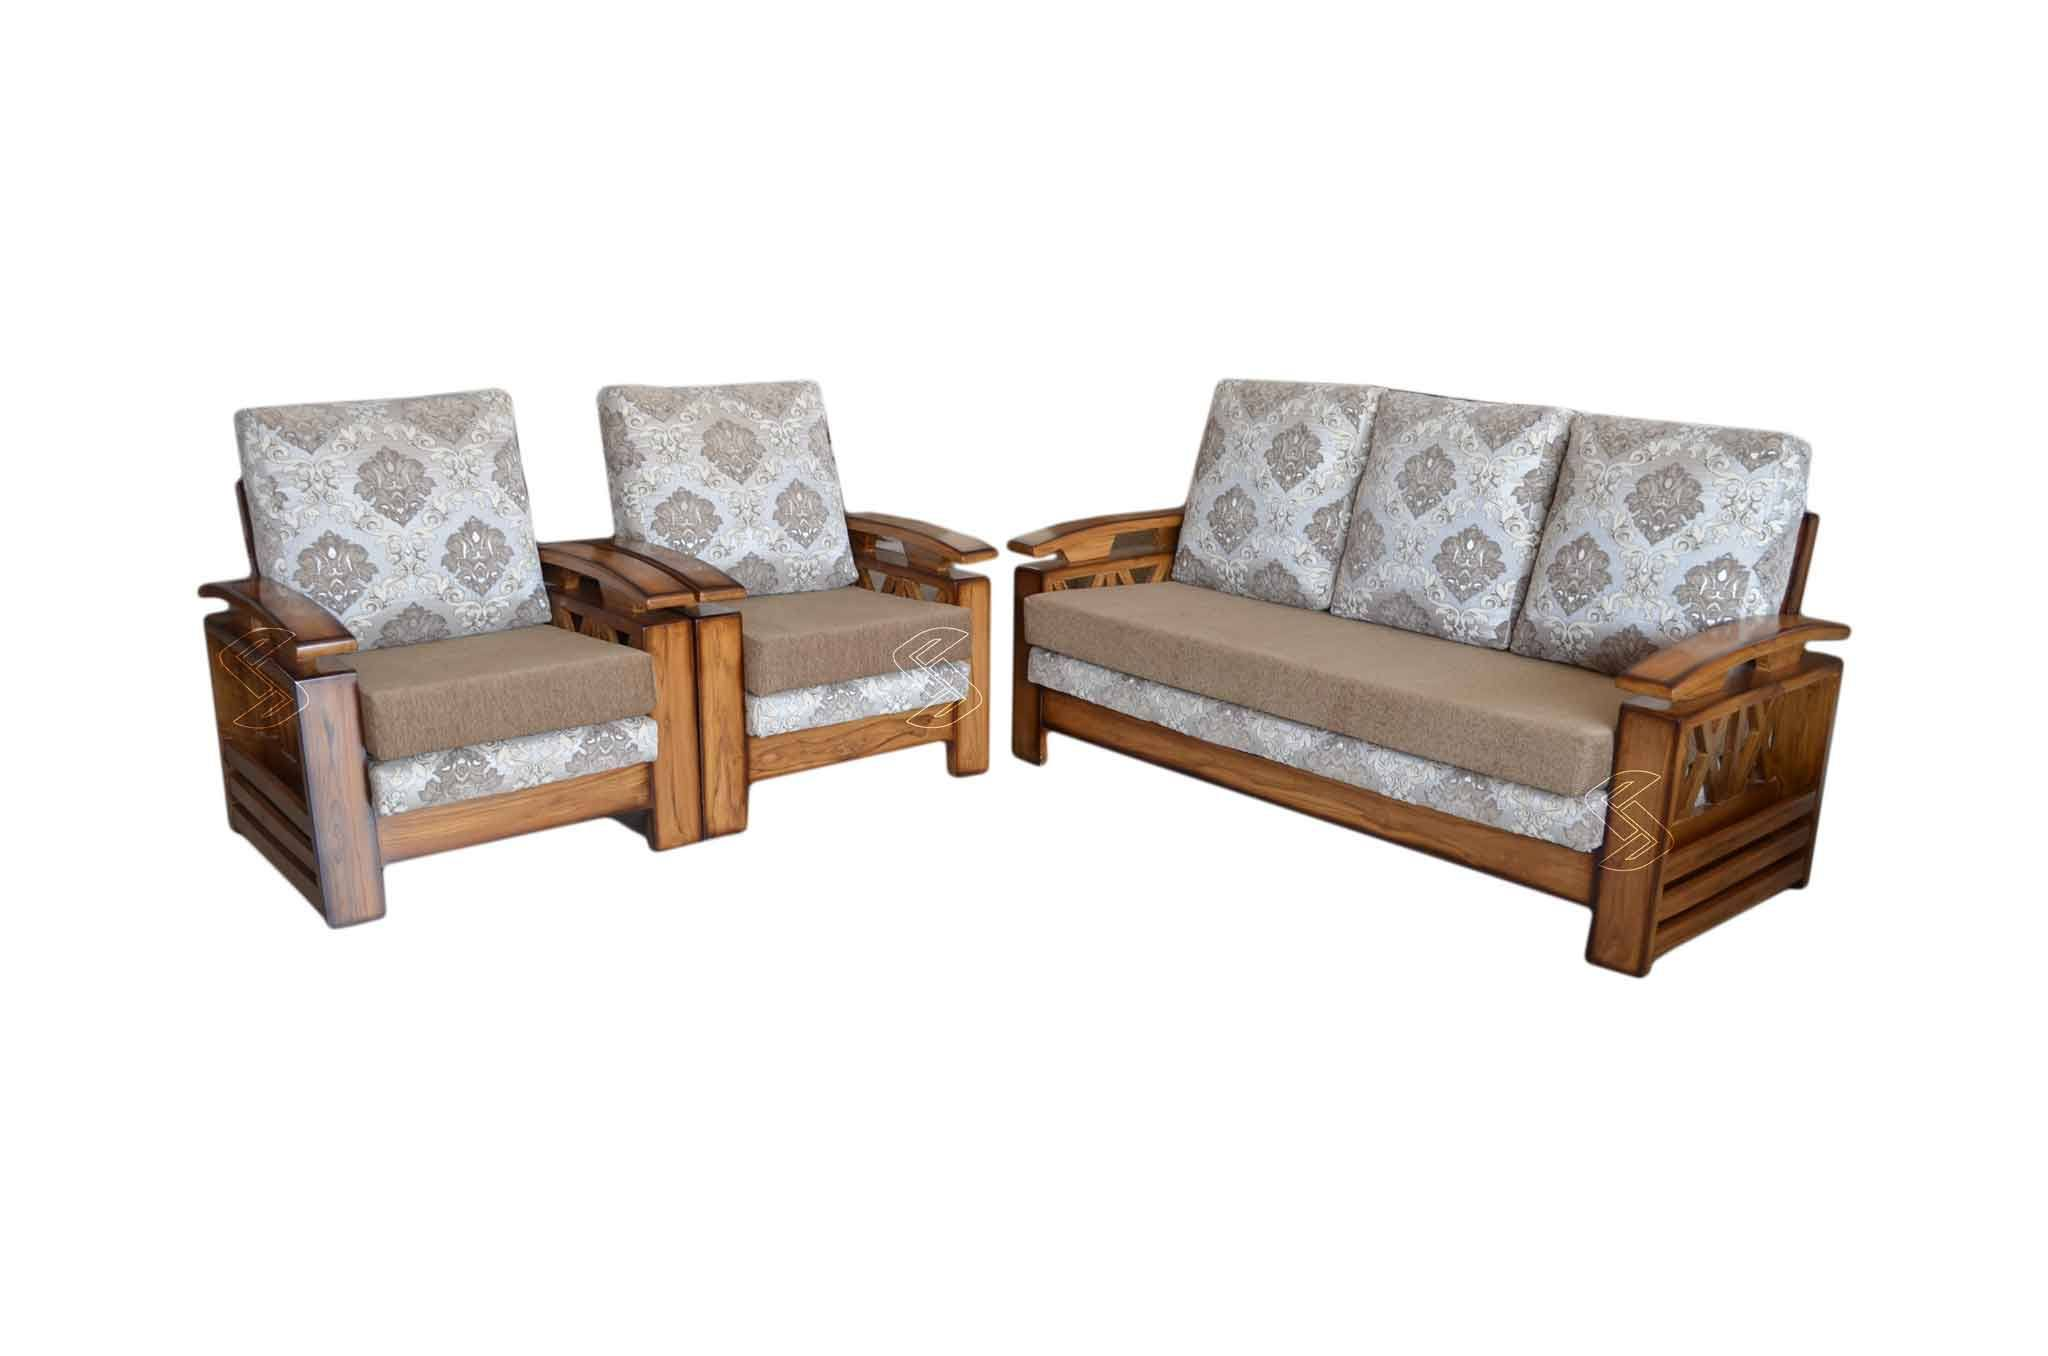 Sofa Set Online Crisso Teakwood 3 1 1 Sofa Set Natural Finish